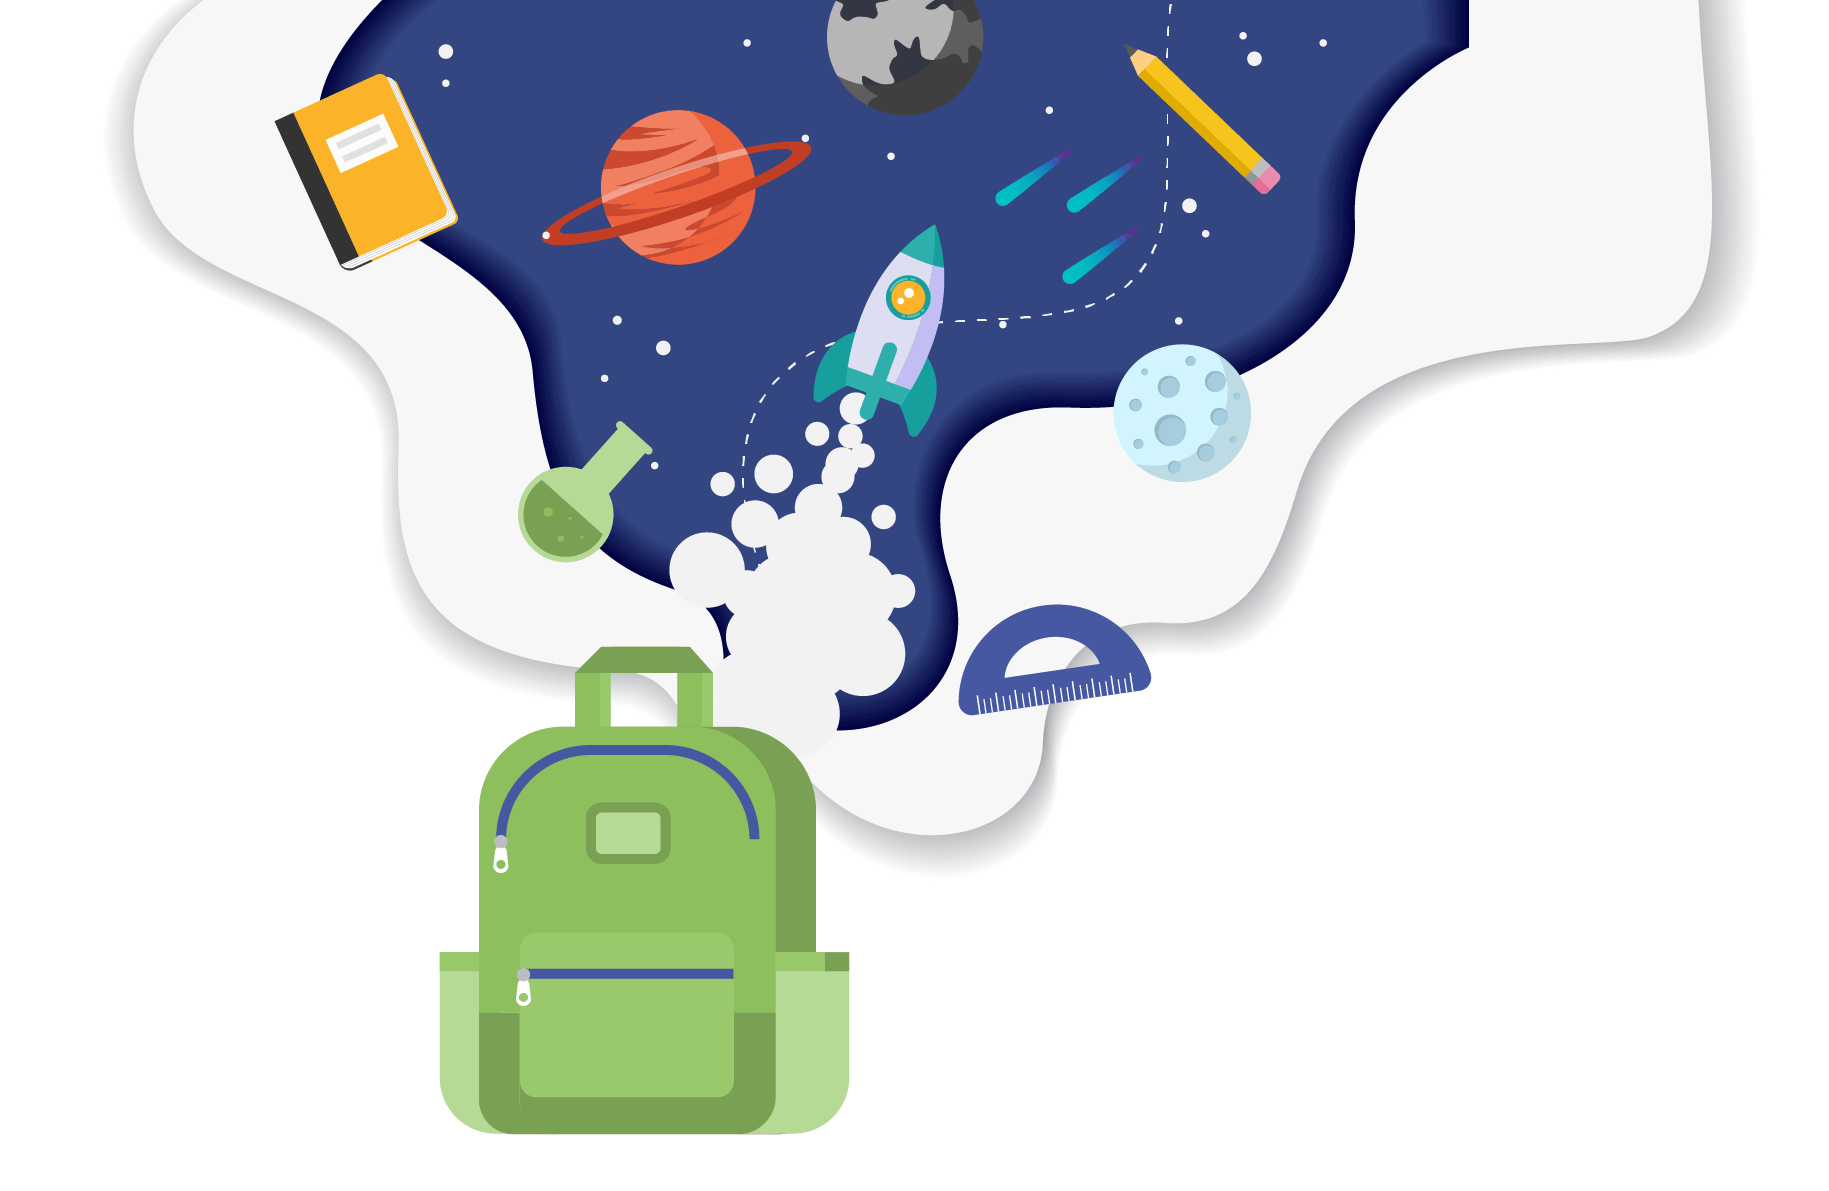 A magical backpack of learning with school supplies, planets, and a spaceship flying out of it